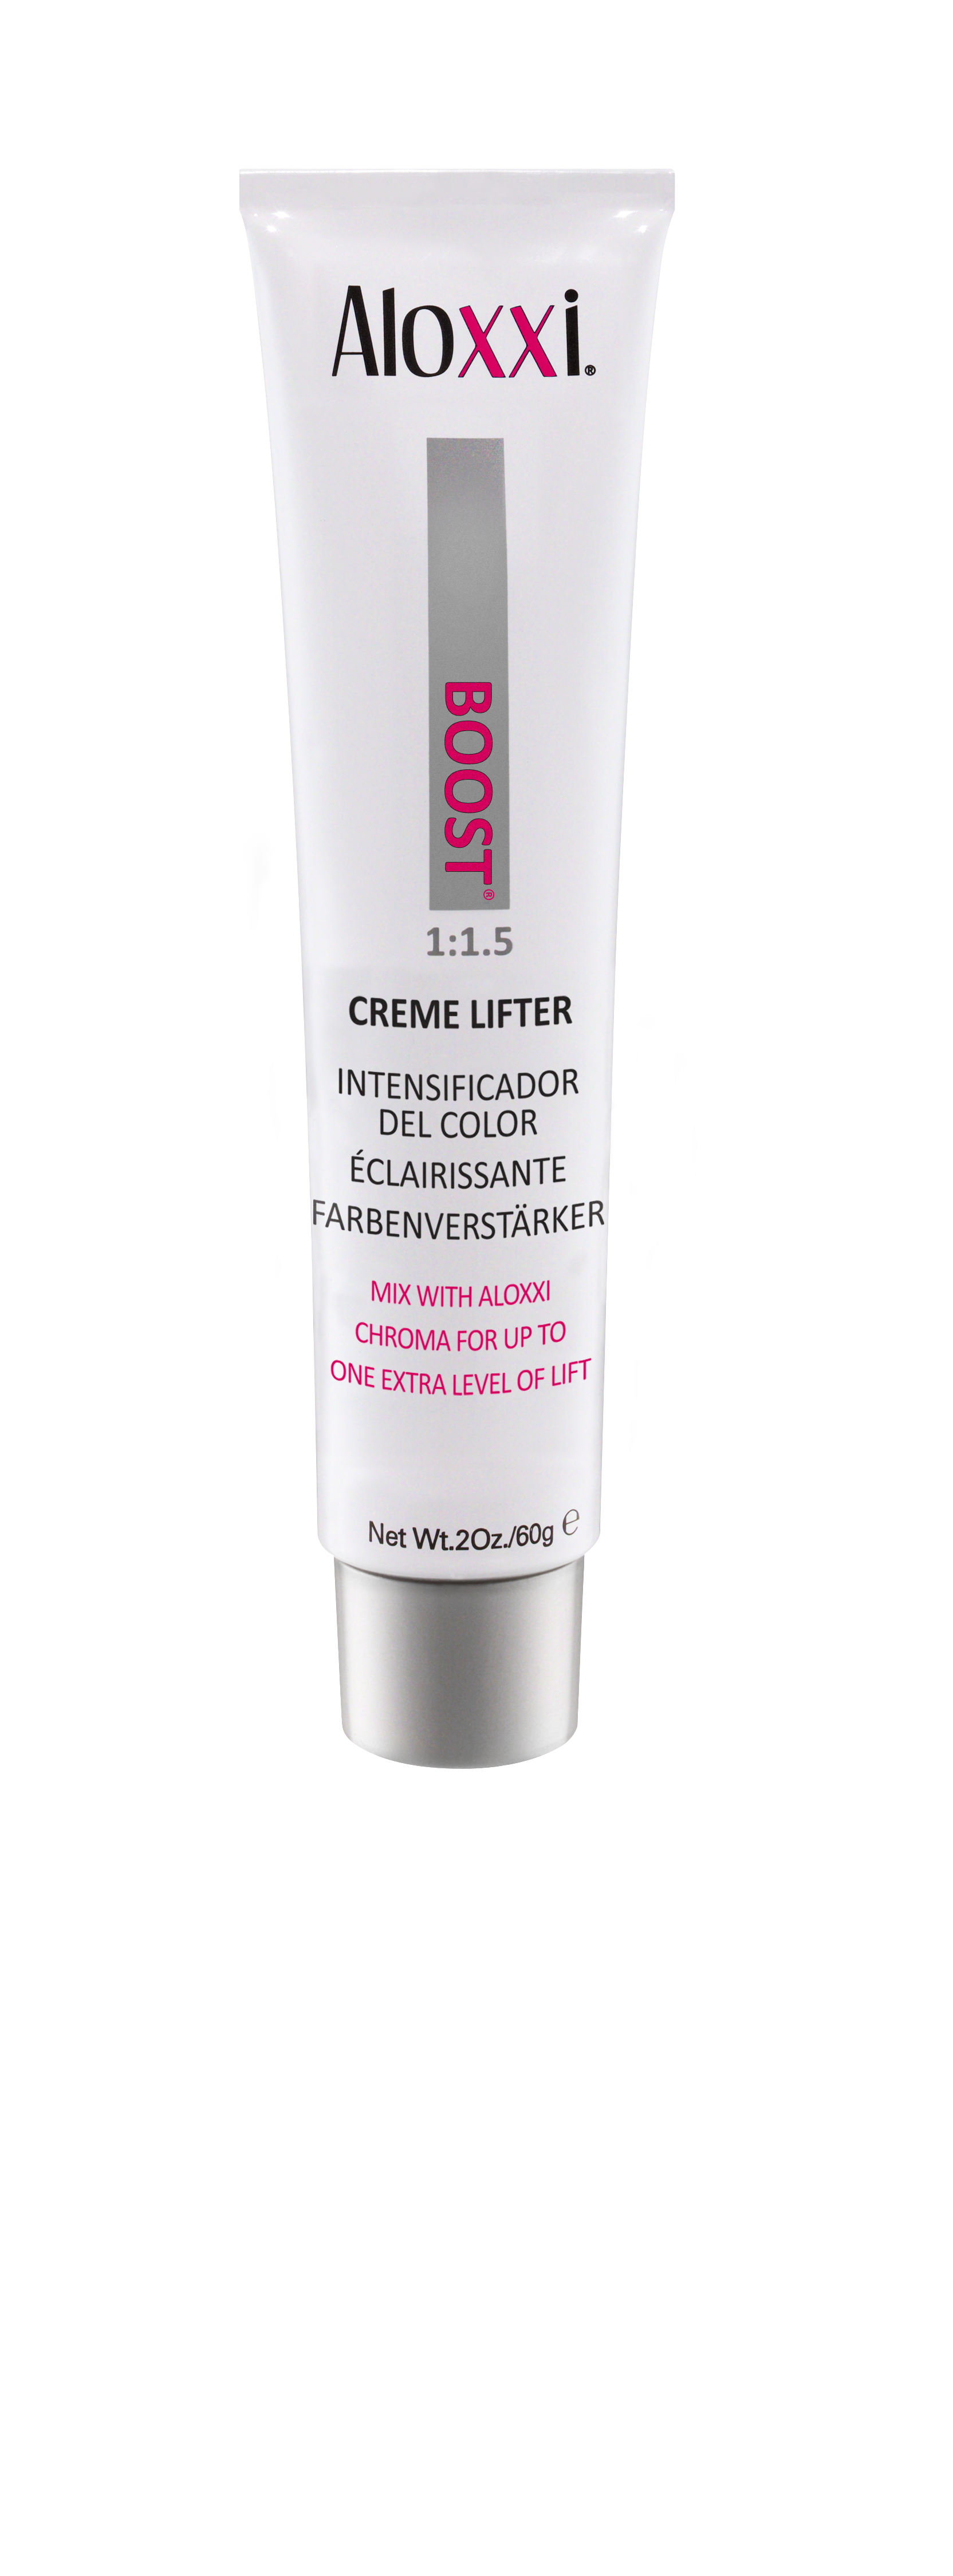 Aloxxi COLOUR BOOST Creme Lifter. Provides up to one extra ...